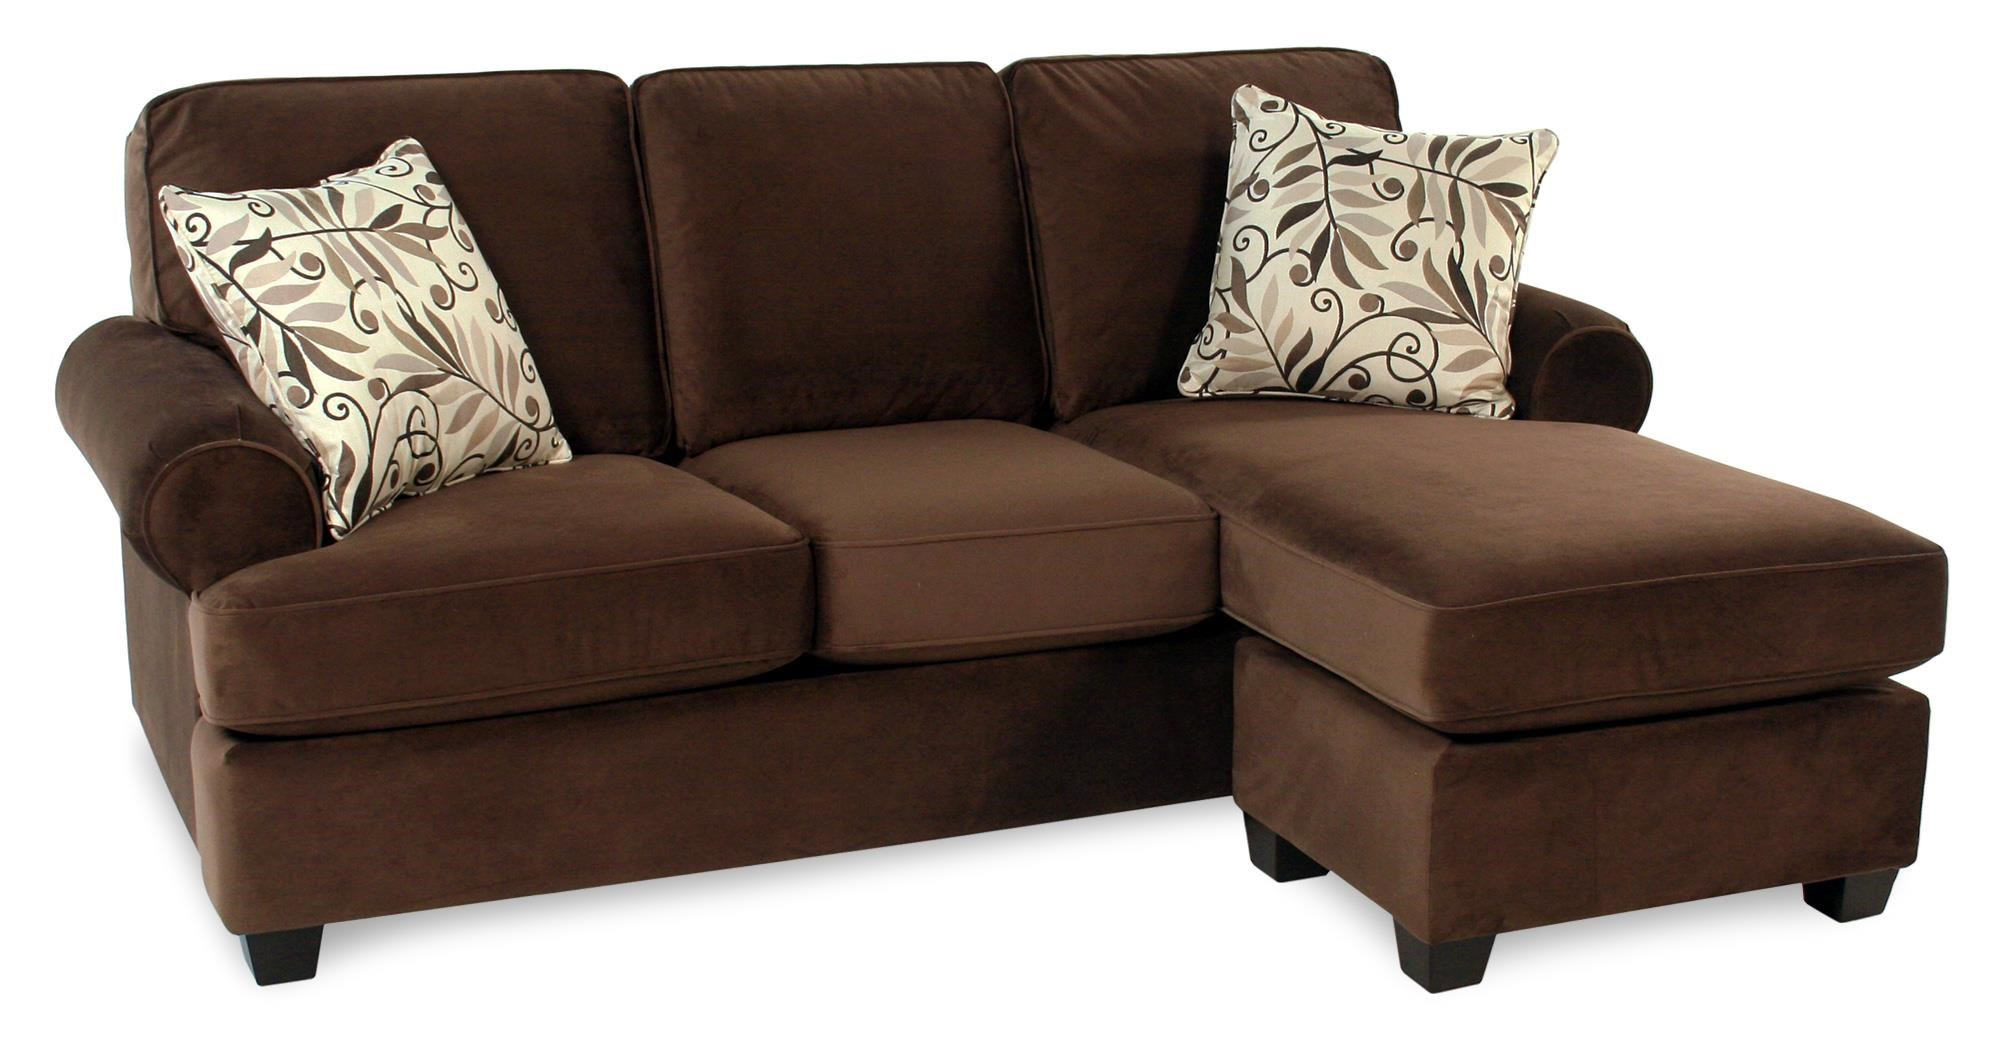 Decor-Rest Hot Chocolate Sofa w/ Reversible Chaise - Item Number: 2285SRC-HOTCHOCO